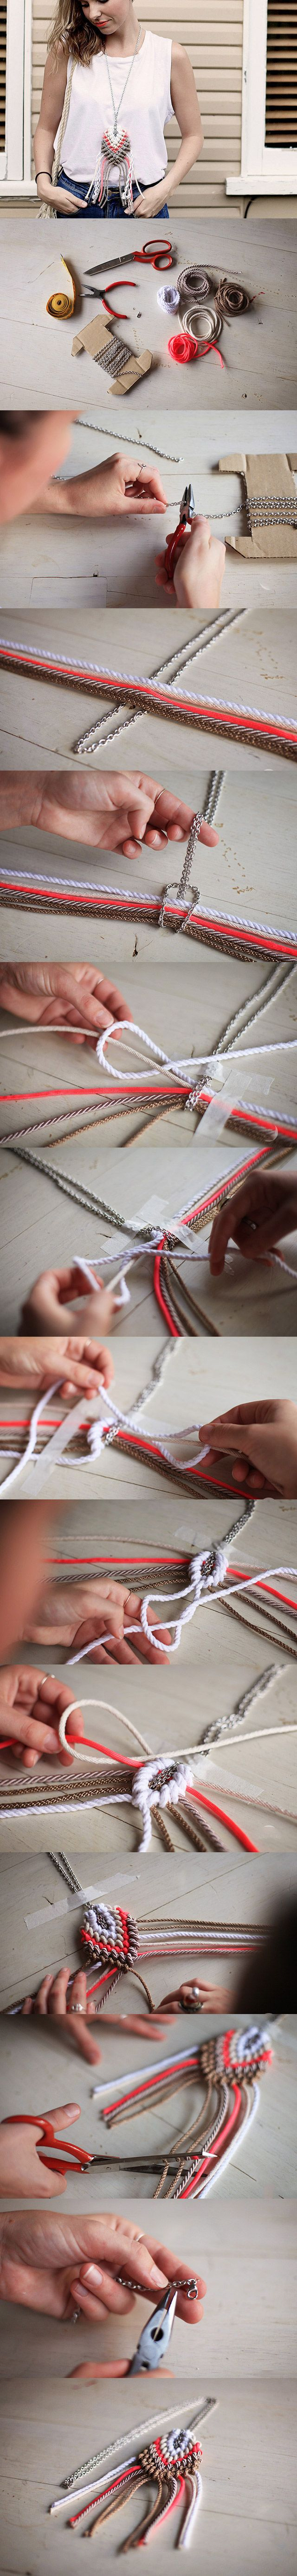 DIY Necklace diy crafts craft ideas easy crafts diy ideas crafty easy